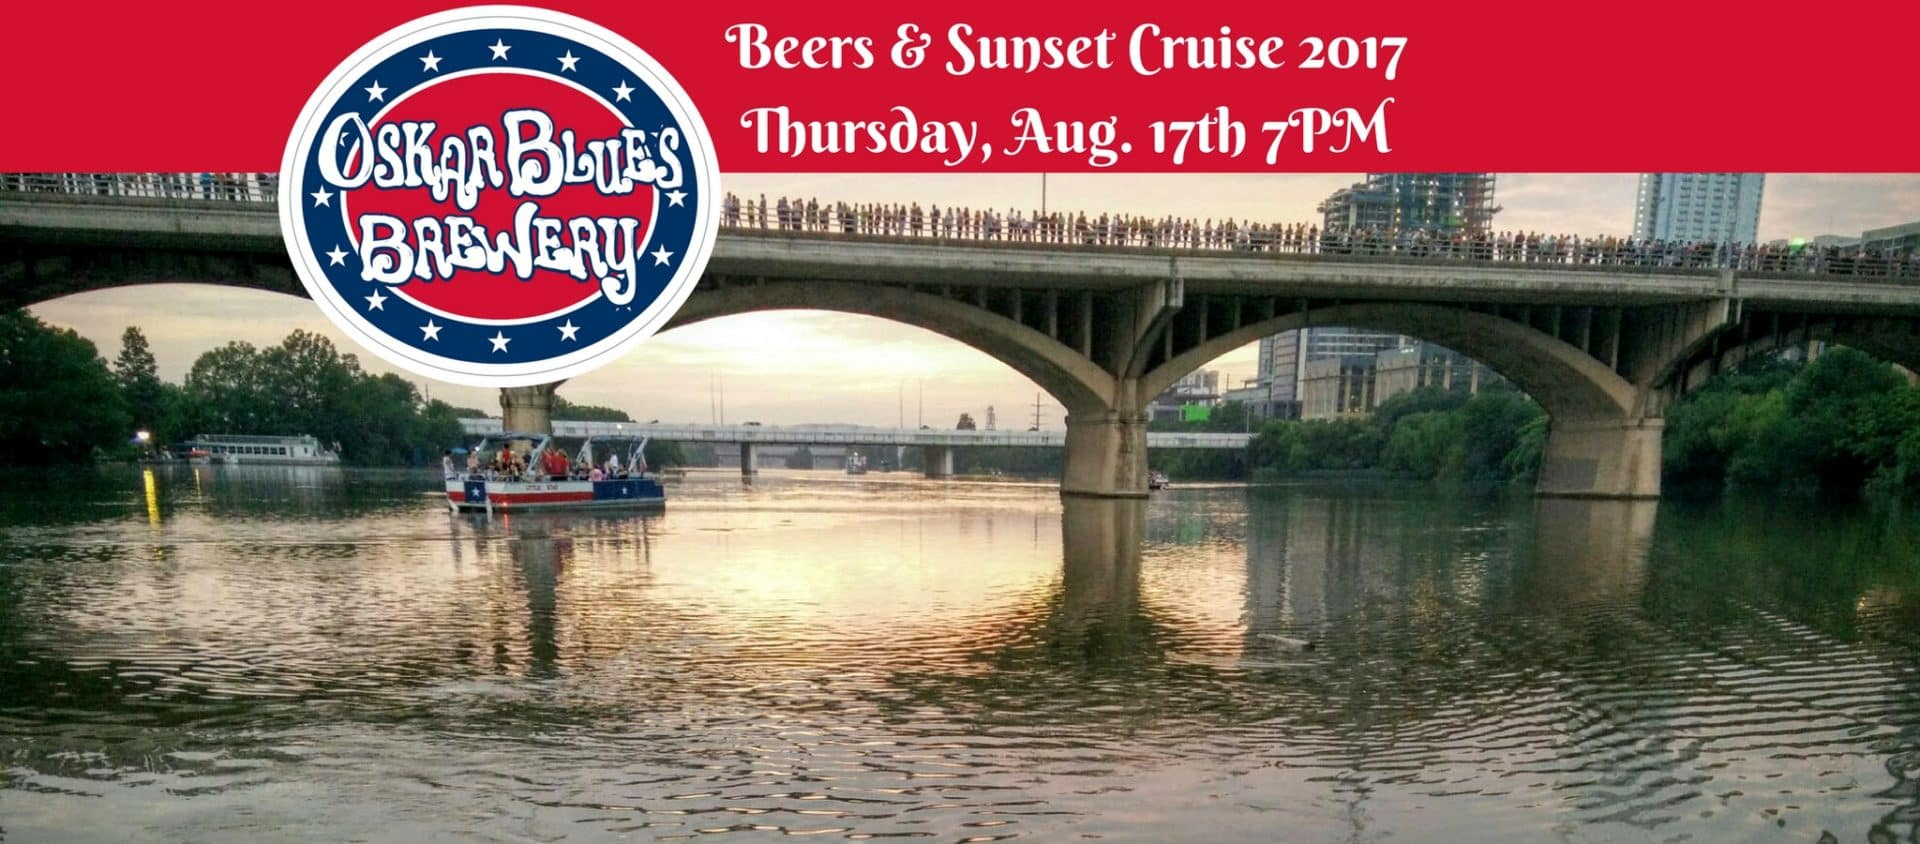 Beers & Sunset Cruise Aug 17th 7PM 2017